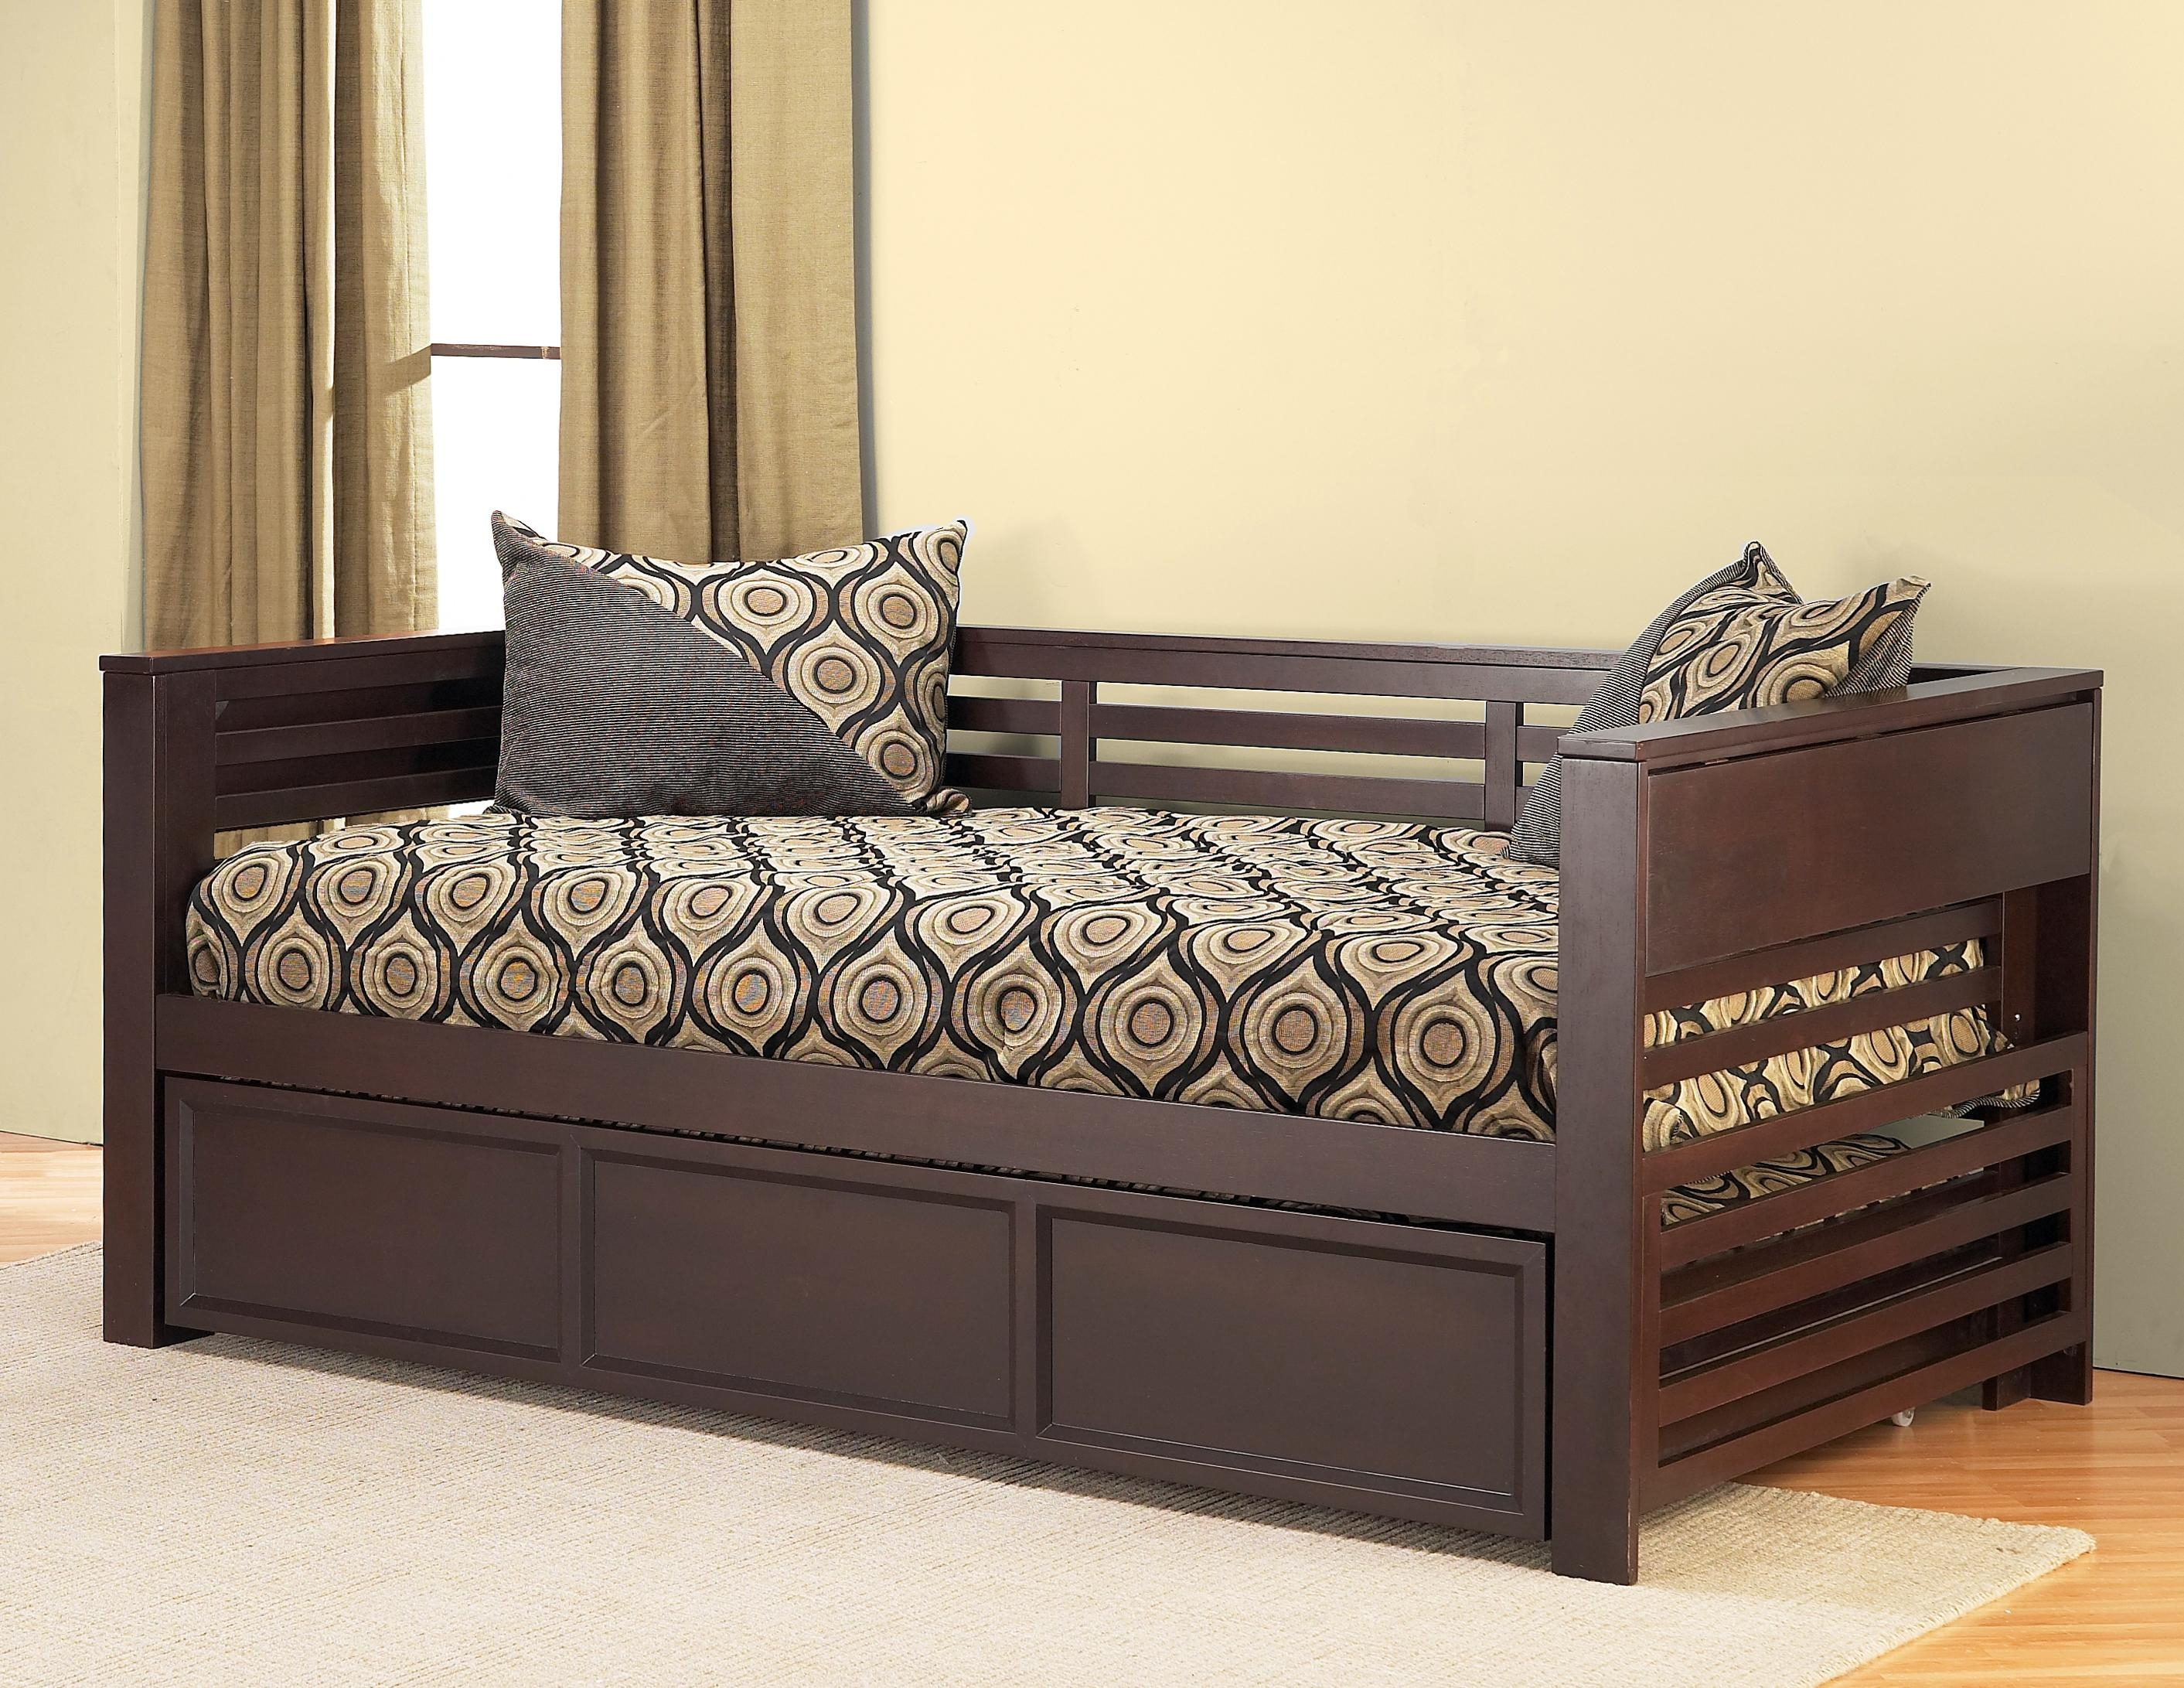 Bedroom: Mesmerizing And Stunning Cheap Daybeds With Trundle For Within Sofa Day Beds (View 12 of 20)